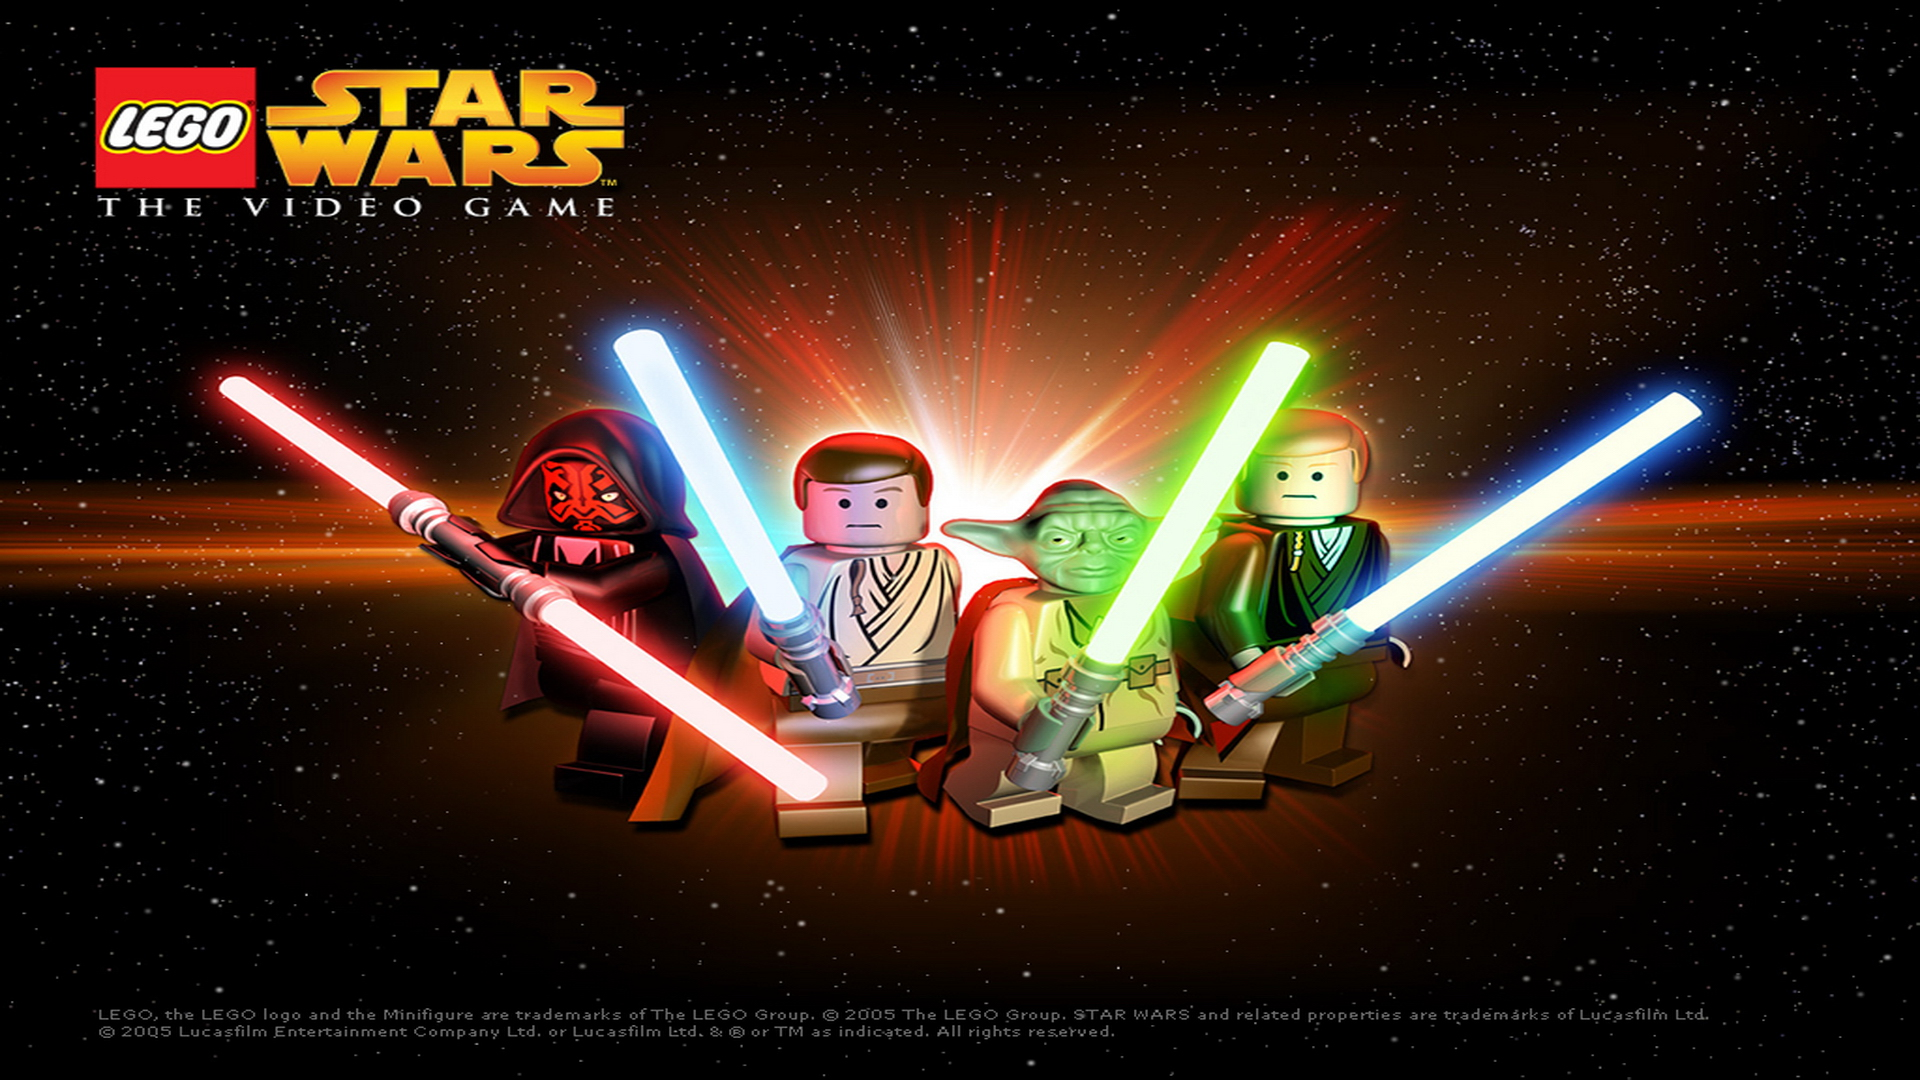 Free Download Pics Photos Wars Characters Lego Background Hd Wallpaper 1920x1080 For Your Desktop Mobile Tablet Explore 78 Star Wars Character Wallpapers Star Wars Movie Wallpaper Star Wars First